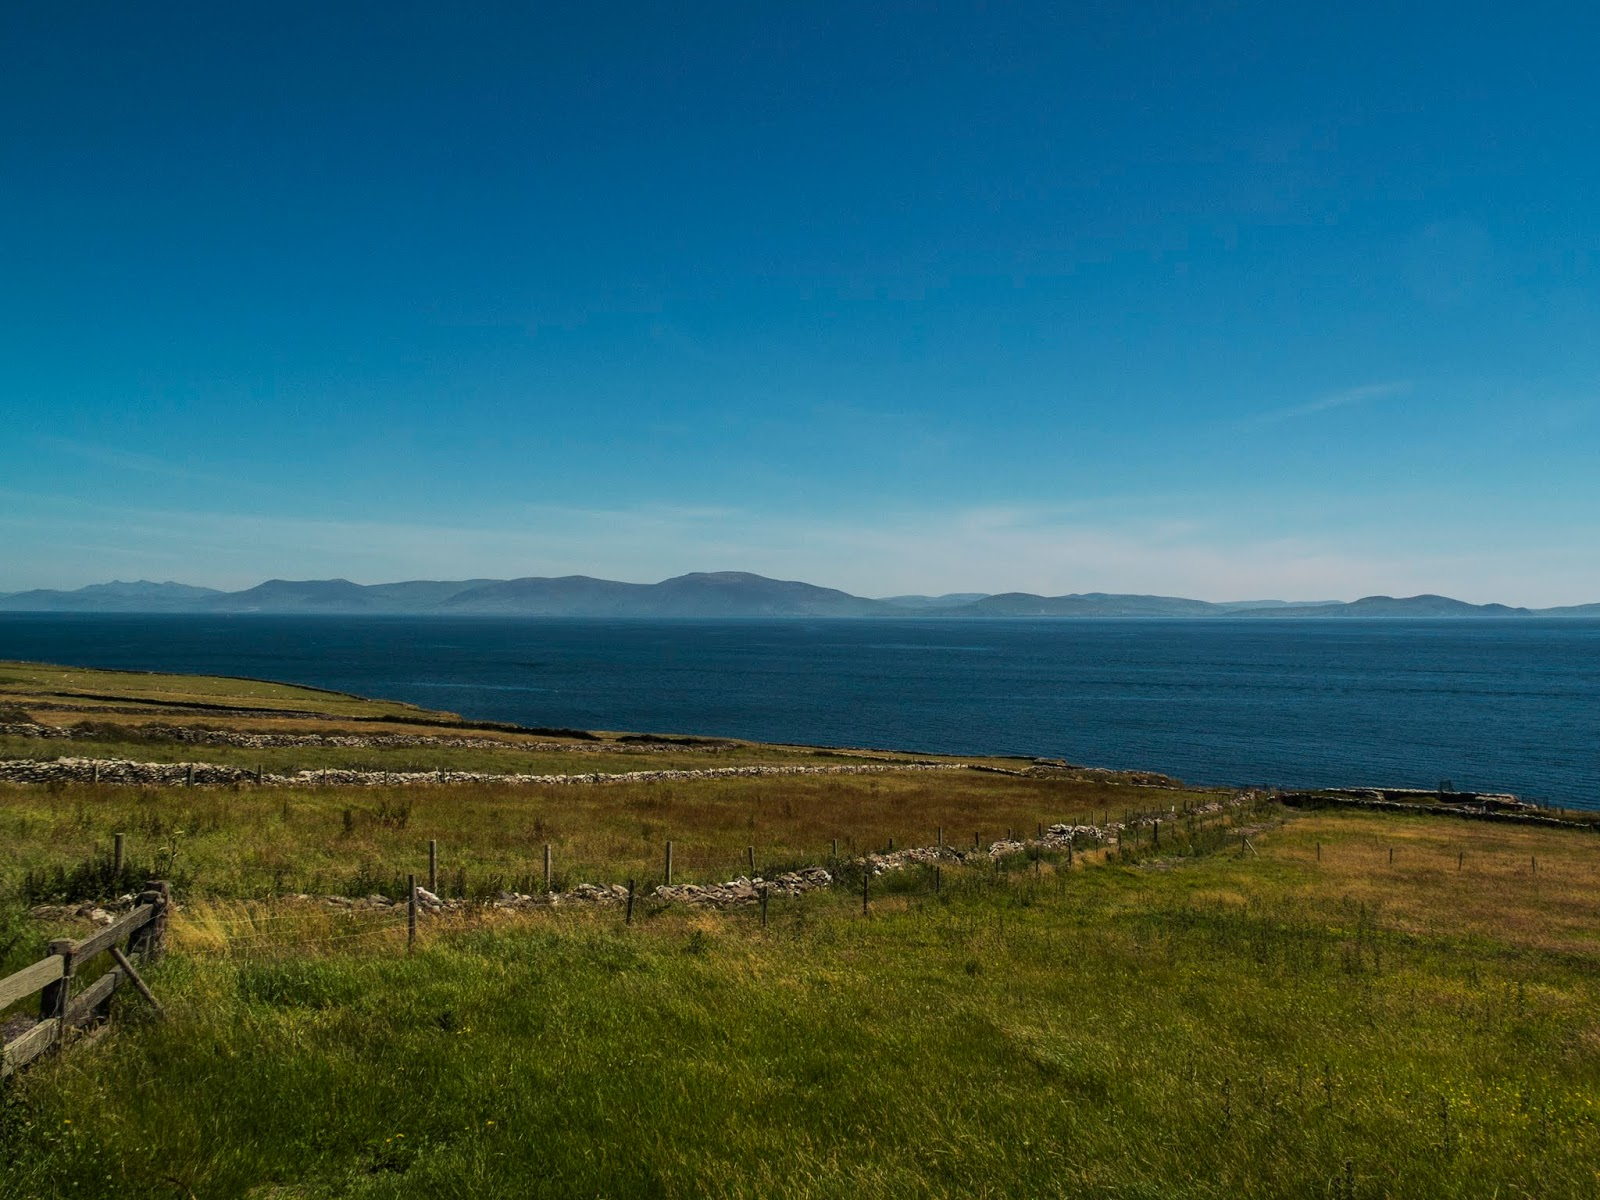 View of the Iveragh Peninsula from Dingle Peninsula on a sunny day.